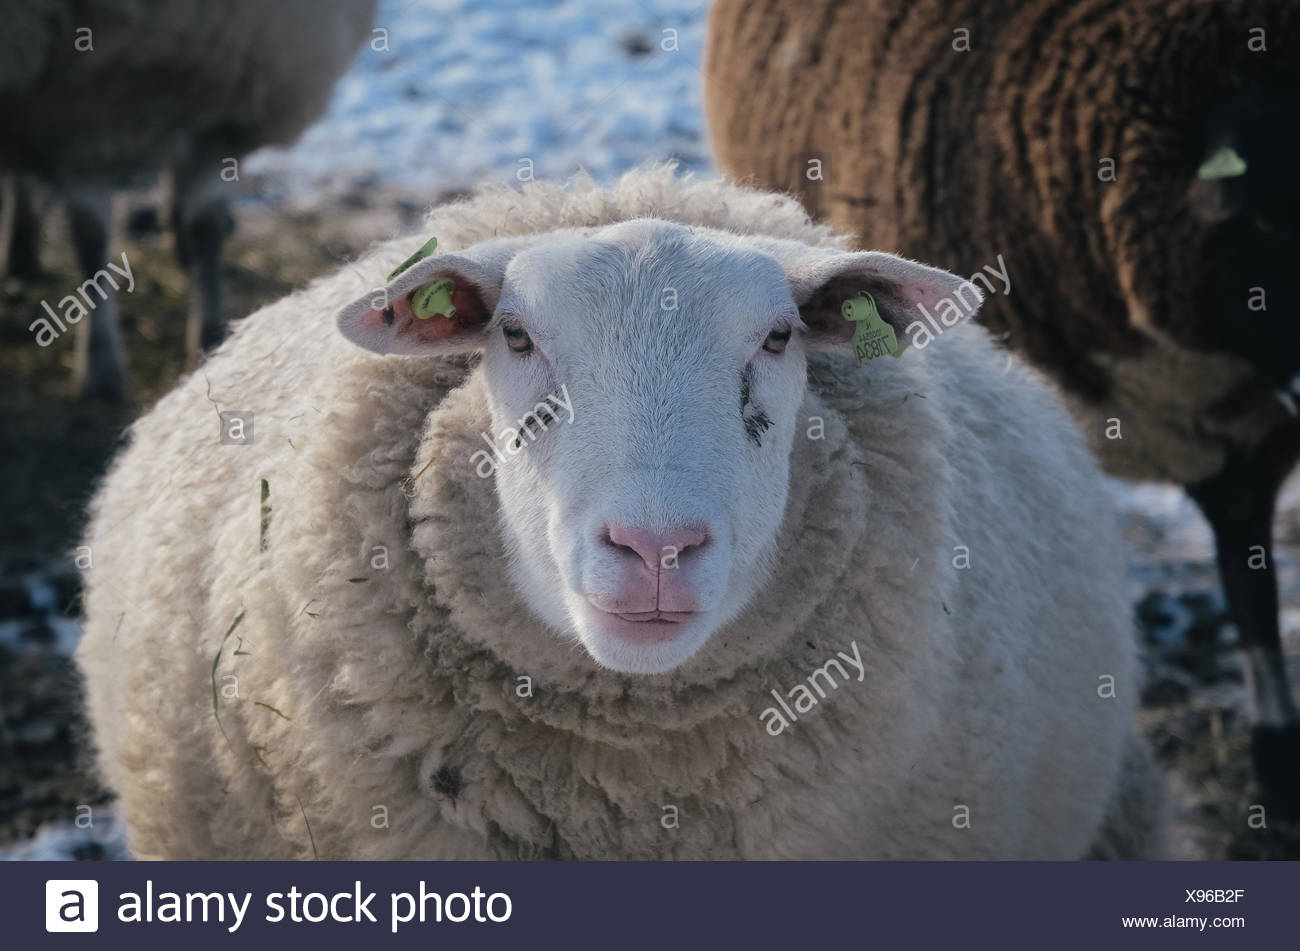 Portrait of a sheep - Stock Image